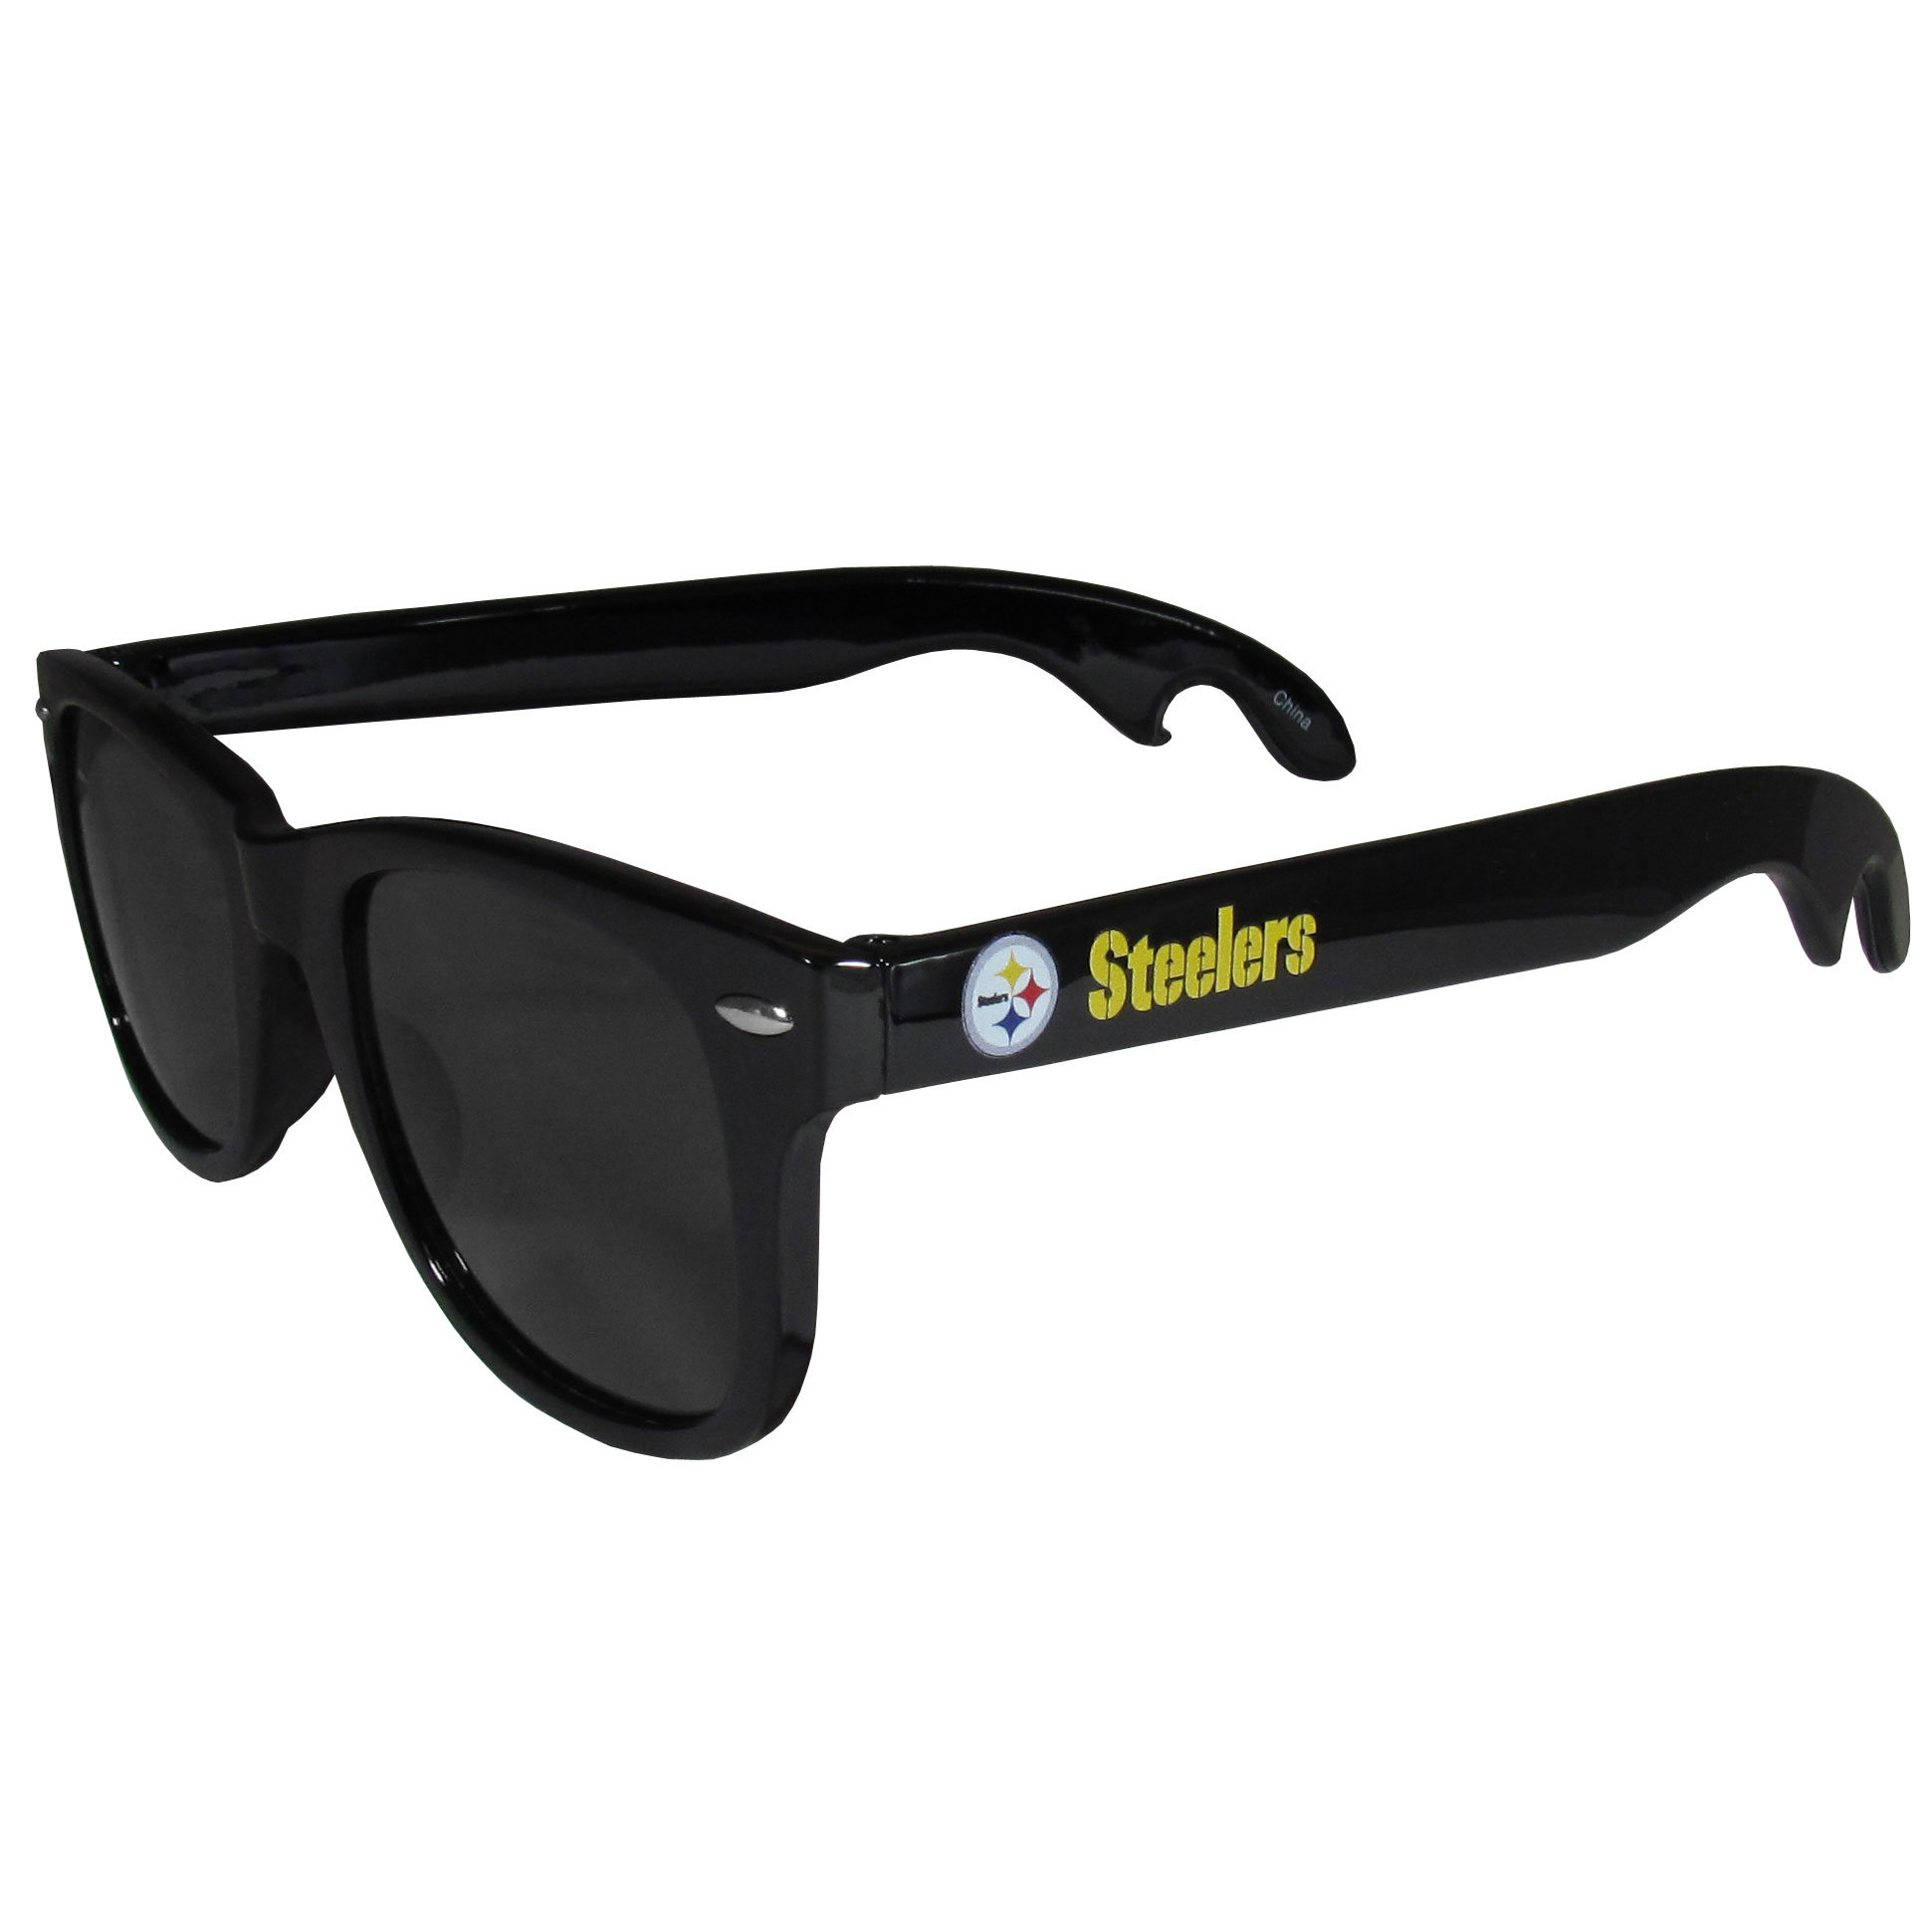 Pittsburgh Steelers Beachfarer Bottle Opener Sunglasses - Seriously, these sunglasses open bottles! Keep the party going with these amazing Pittsburgh Steelers bottle opener sunglasses. The stylish retro frames feature team designs on the arms and functional bottle openers on the end of the arms. Whether you are at the beach or having a backyard BBQ on game day, these shades will keep your eyes protected with 100% UVA/UVB protection and keep you hydrated with the handy bottle opener arms.